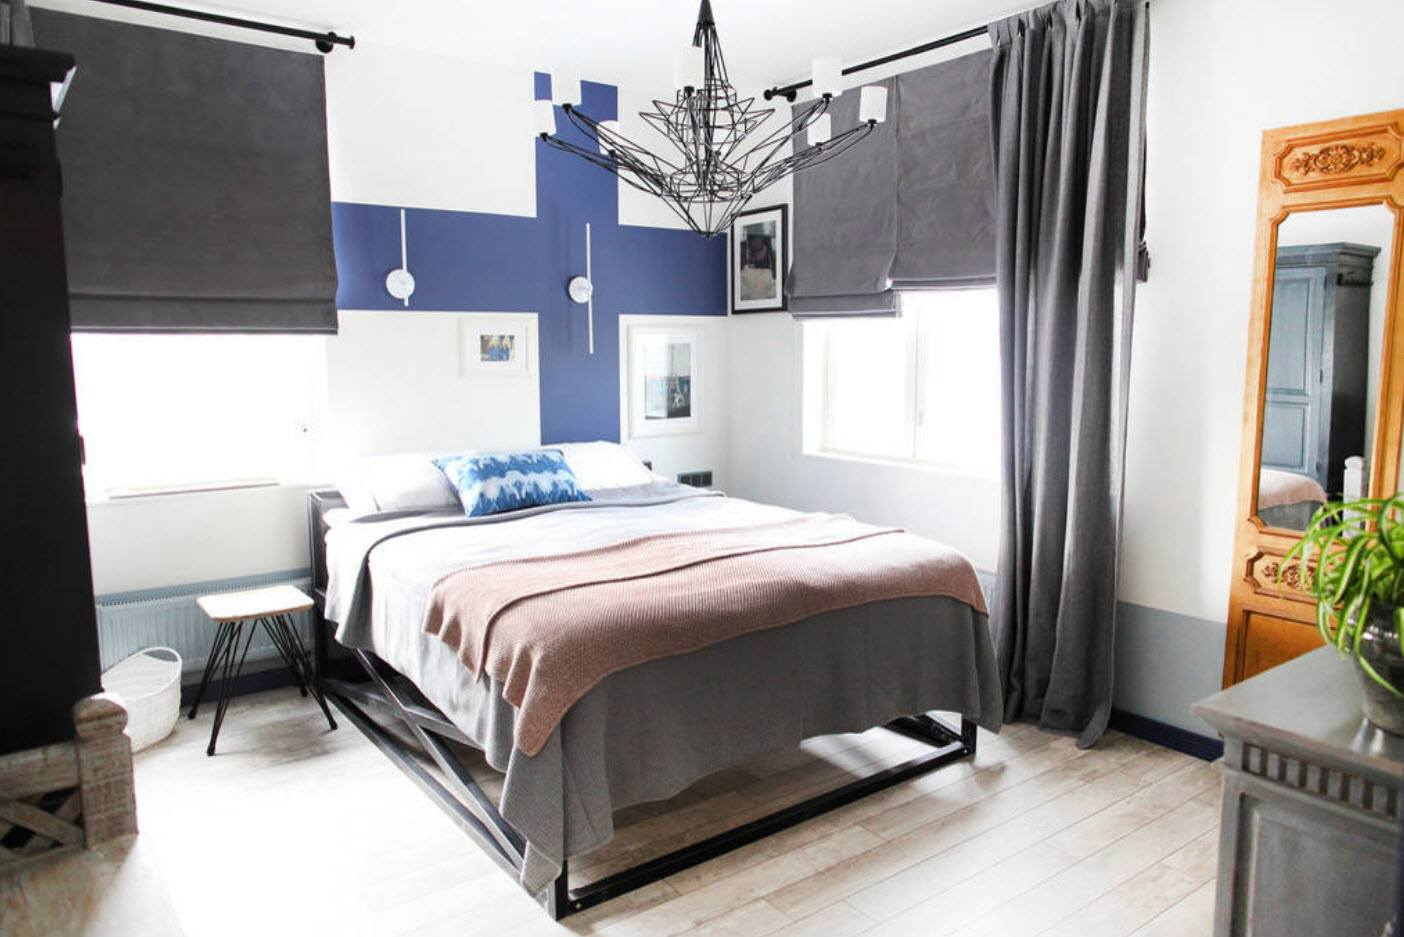 120 Square Feet Bedroom Interior Decoration Ideas. Finnish flag at the wall of Scandi designed room